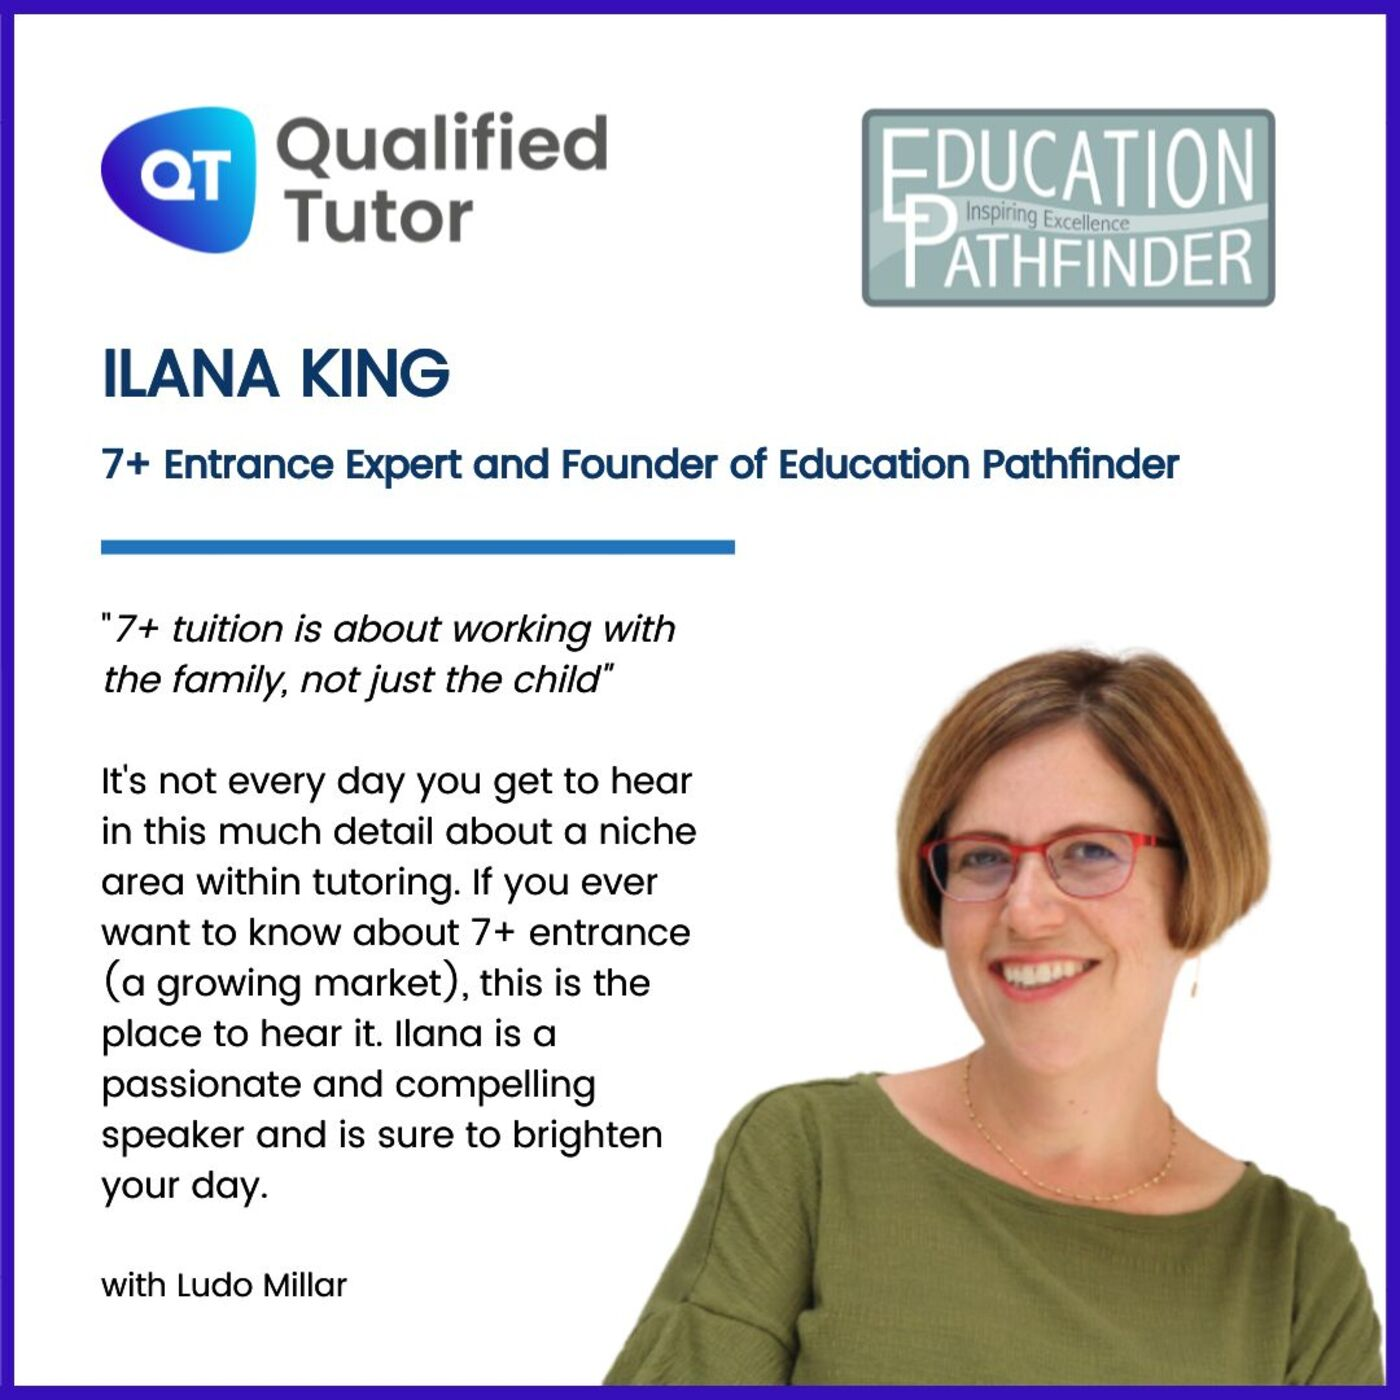 All You Need To Know About the 7+ Entrance Exam, with Expert Tutor Ilana King